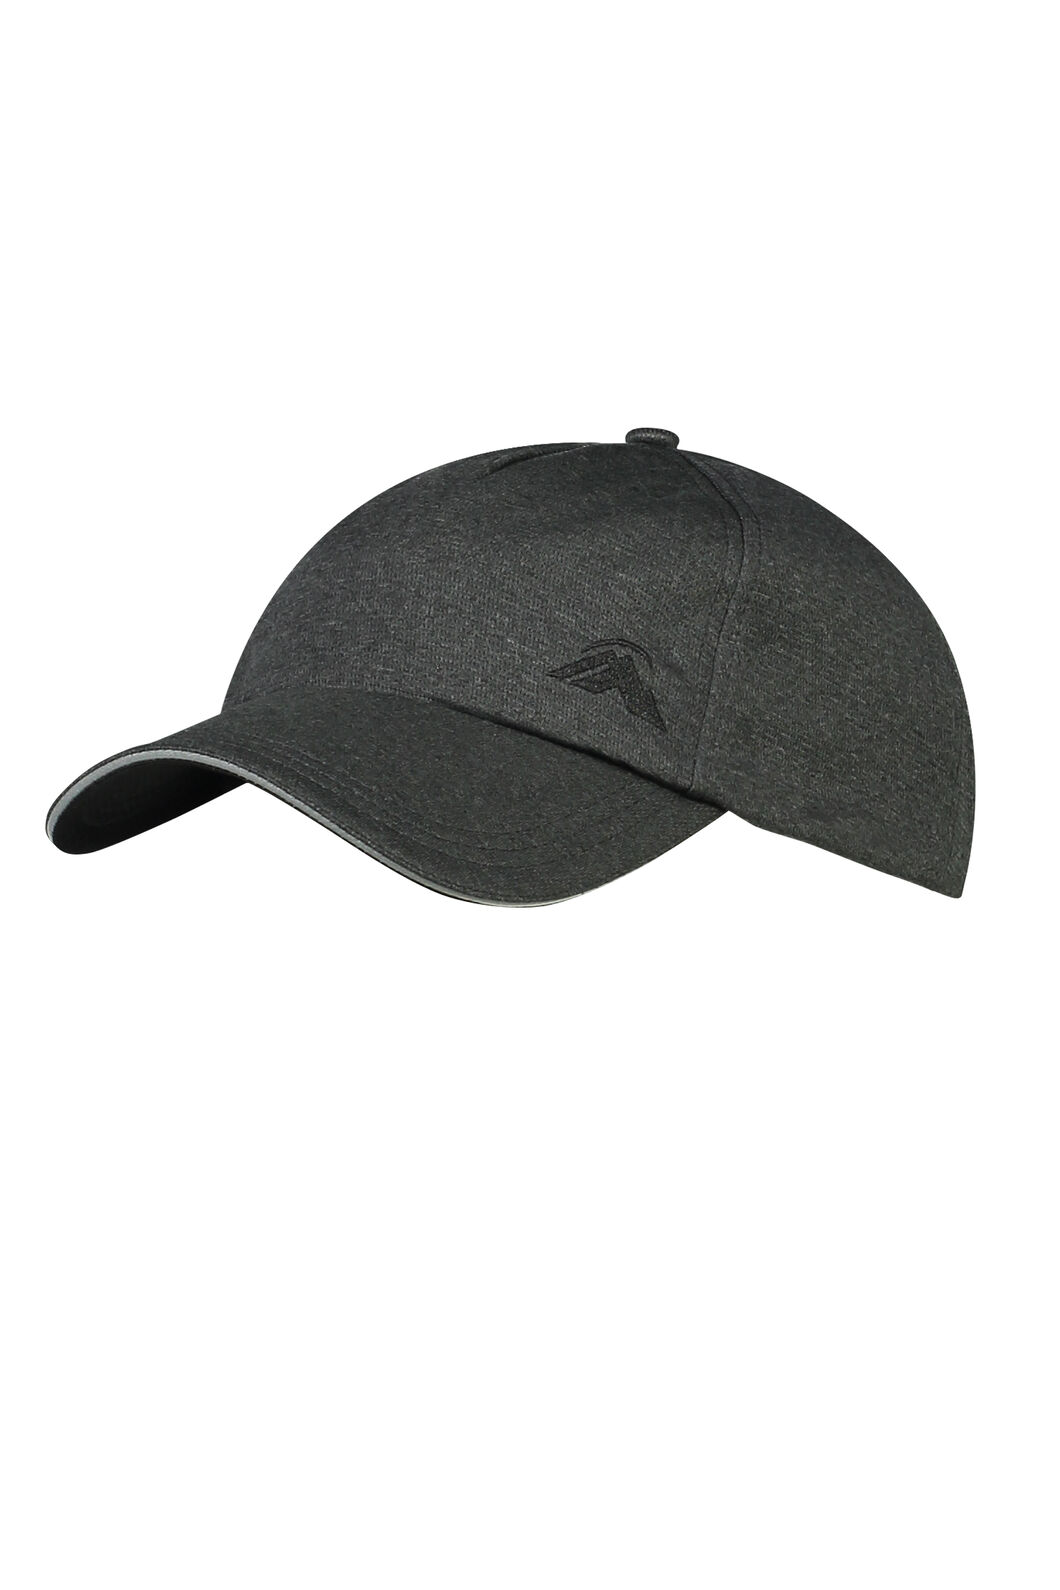 Trail Cap, Dark Grey, hi-res